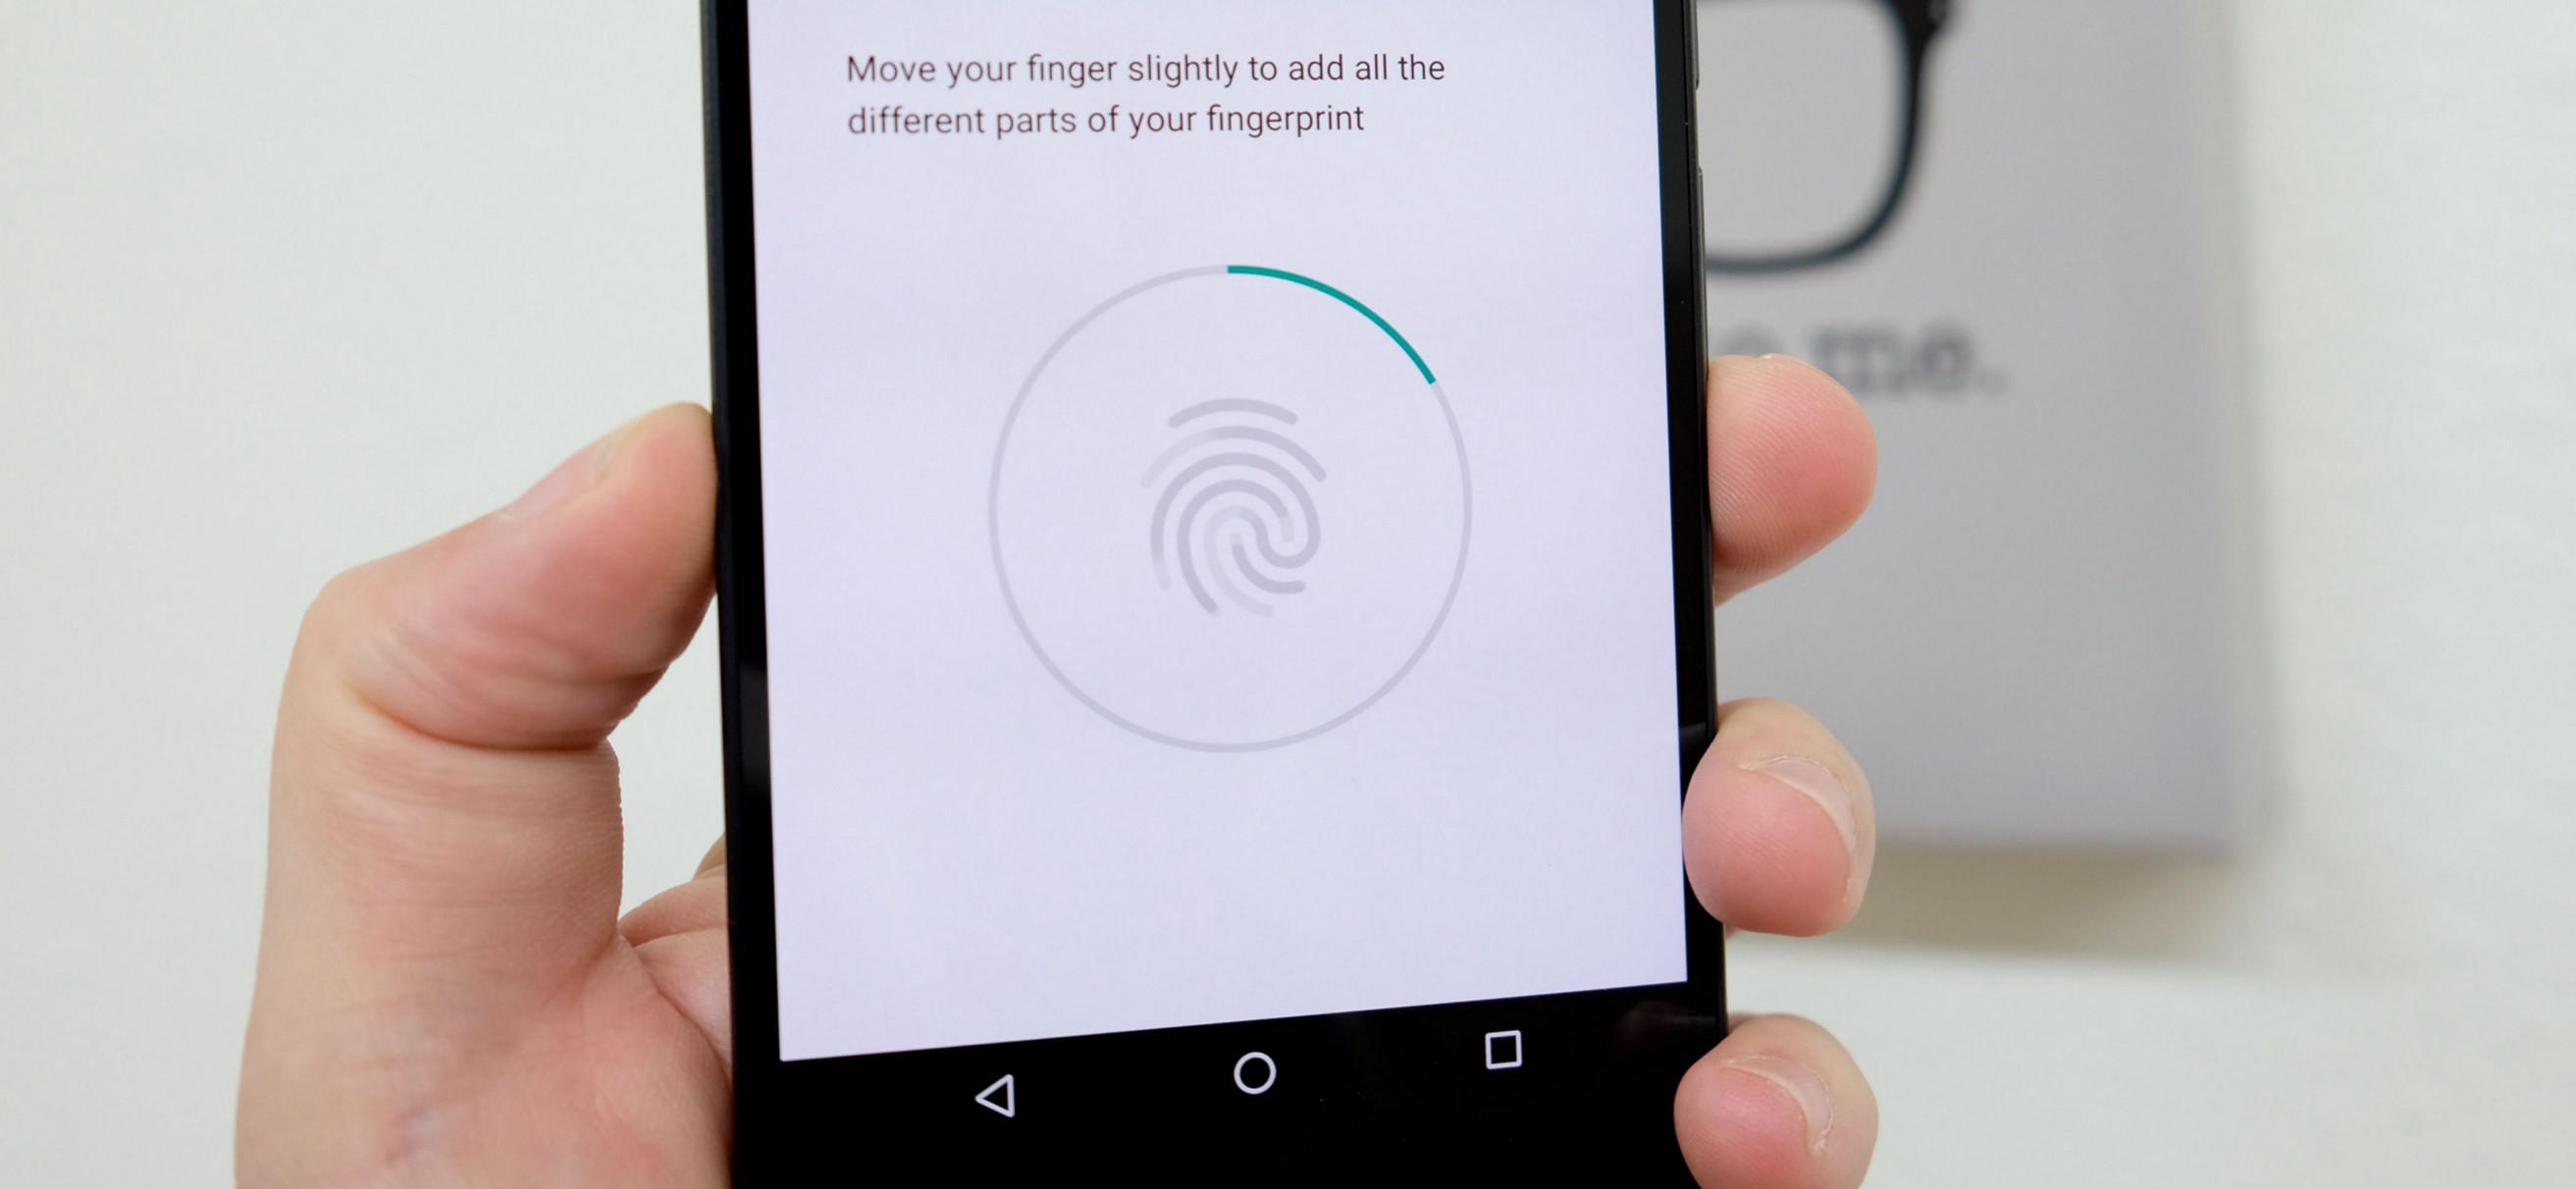 Authenticate your users with fingerprint in the Android